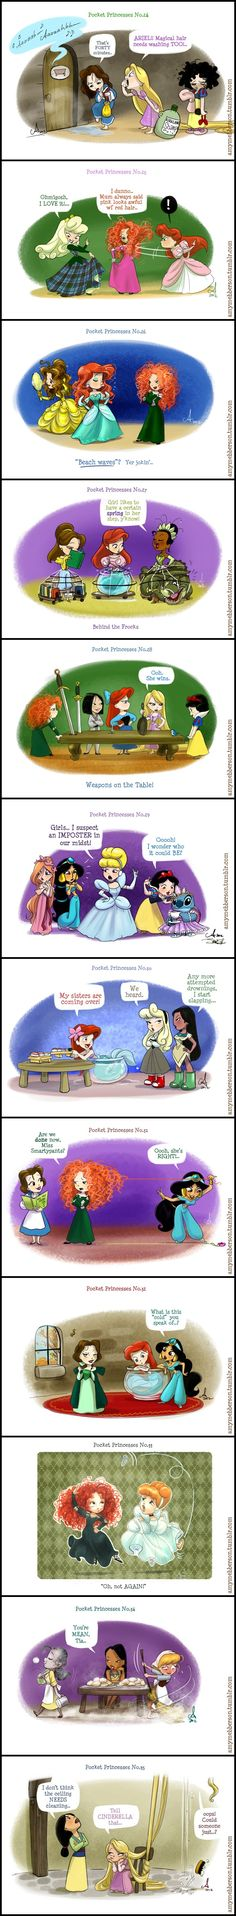 Pocket Princesses (Part 3) by Amy Mebberson STITCH. GUYS STITCH MAKES WHATEVER WAS ALREADY BEAUTIFUL JUST FABULOUS